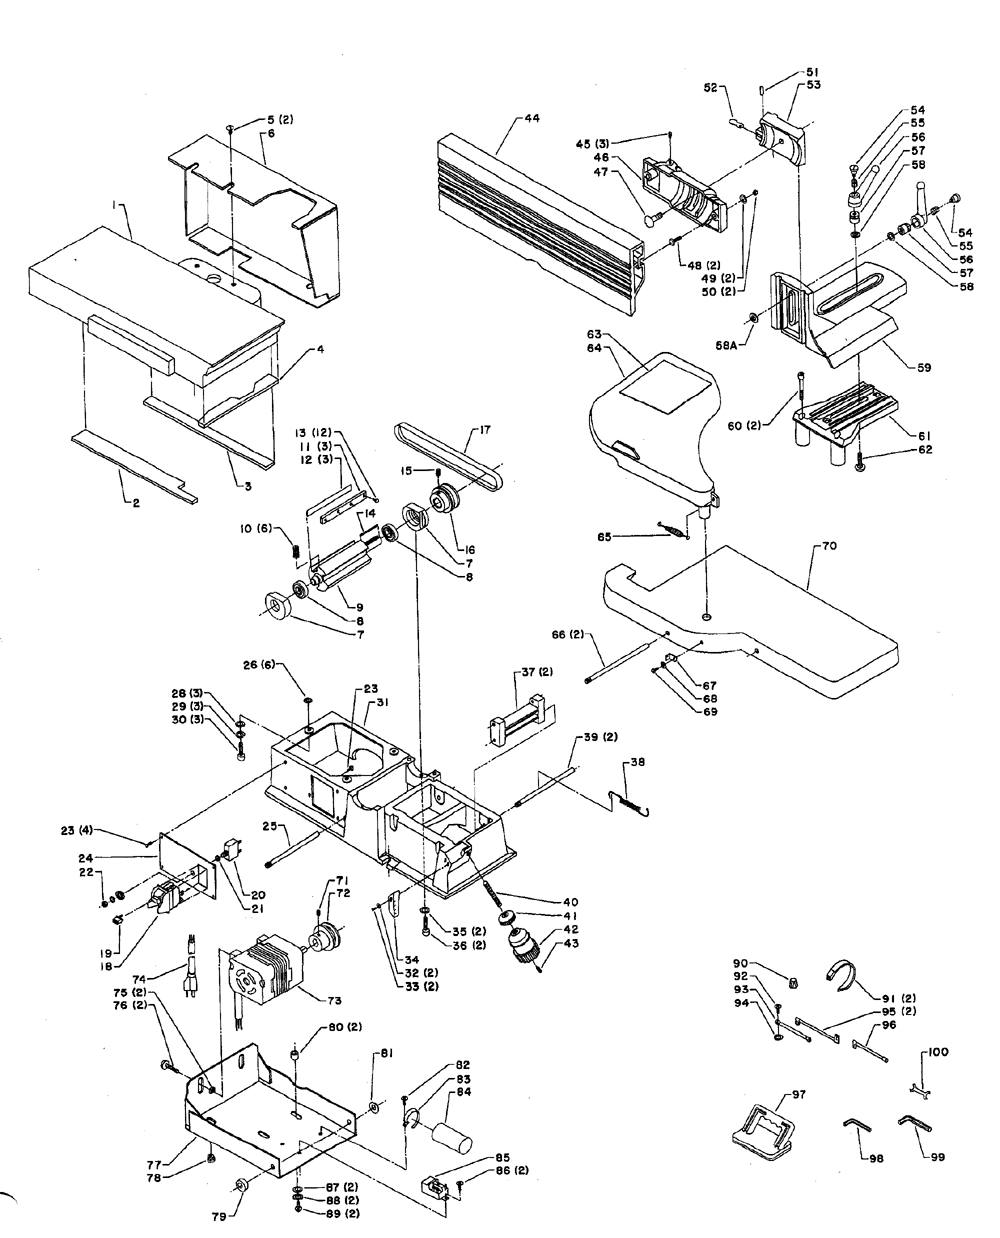 delta tools wiring diagram 1966 oldsmobile delta 88 wiring diagram buy delta 37-280 replacement tool parts | delta 37-280 ...